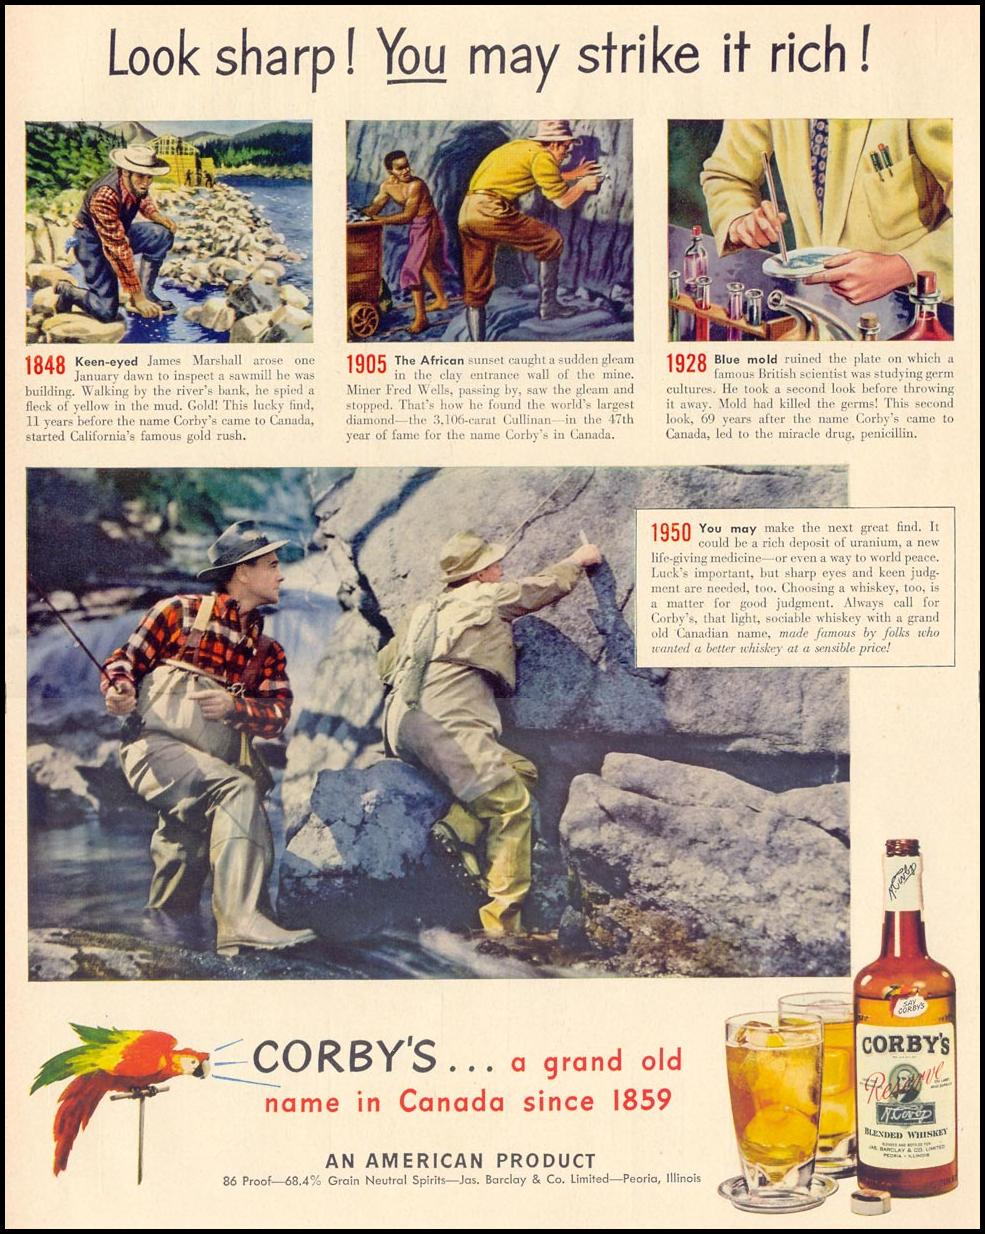 CORBY'S RESERVE BLENDED WHISKEY LIFE 04/17/1950 p. 122